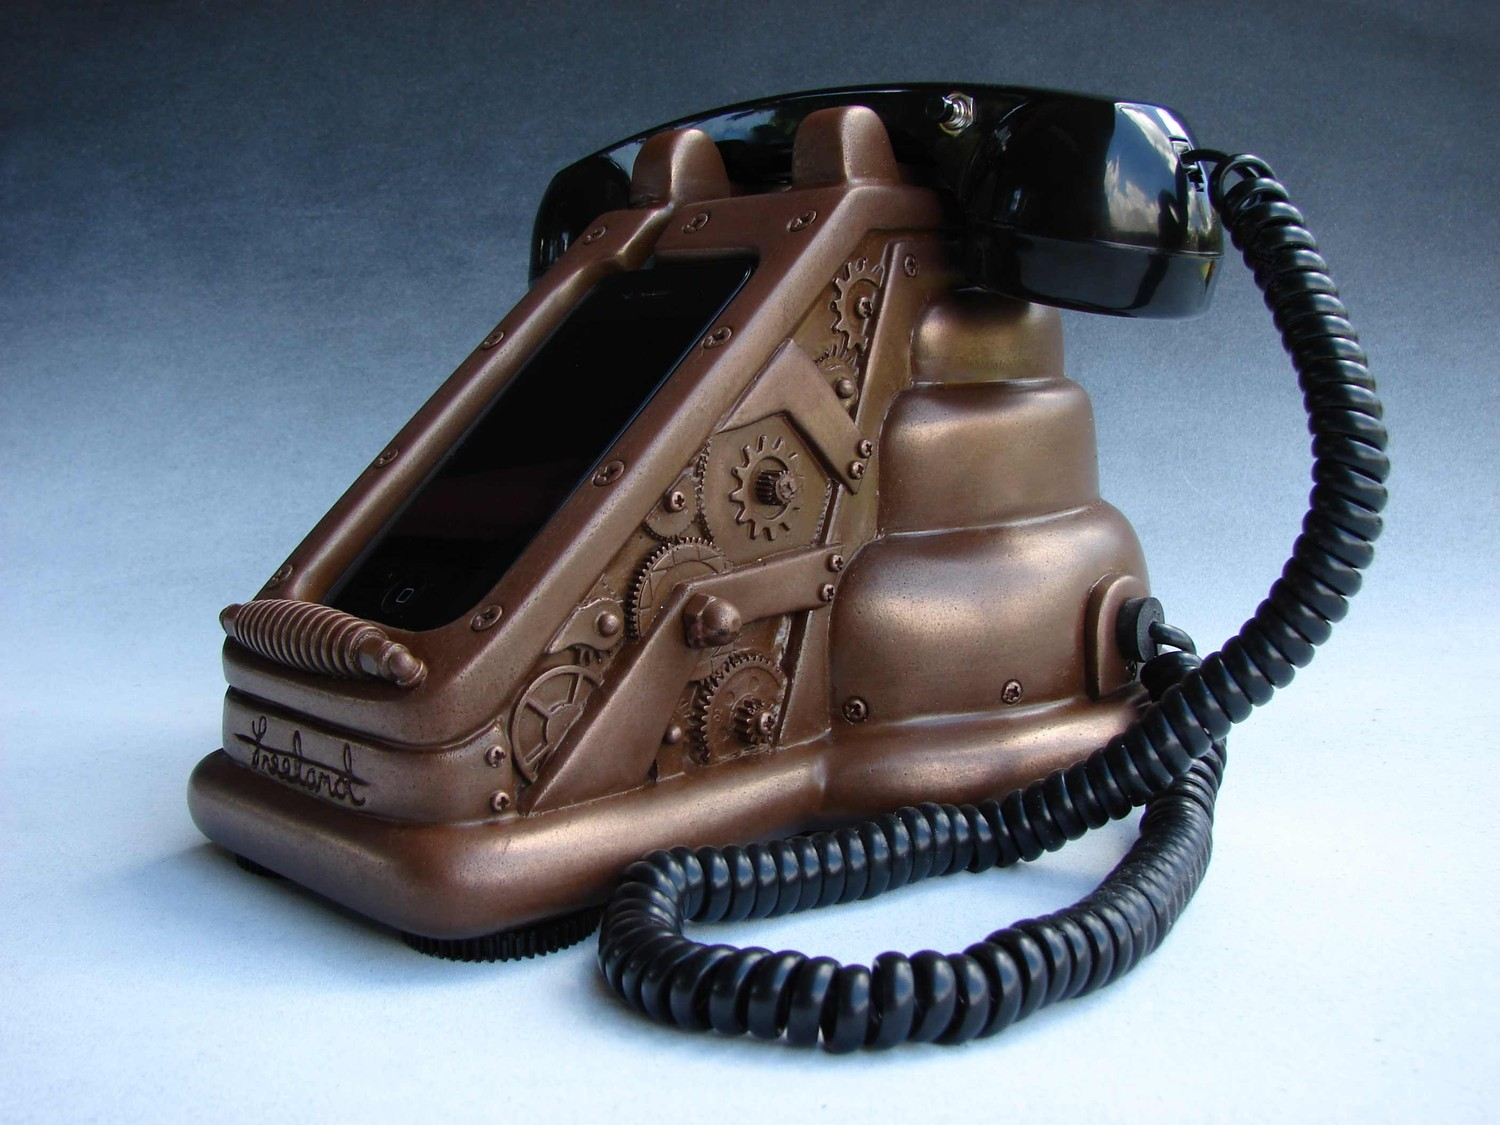 A steampunk iPhone dock that makes the Bat Phone look lame